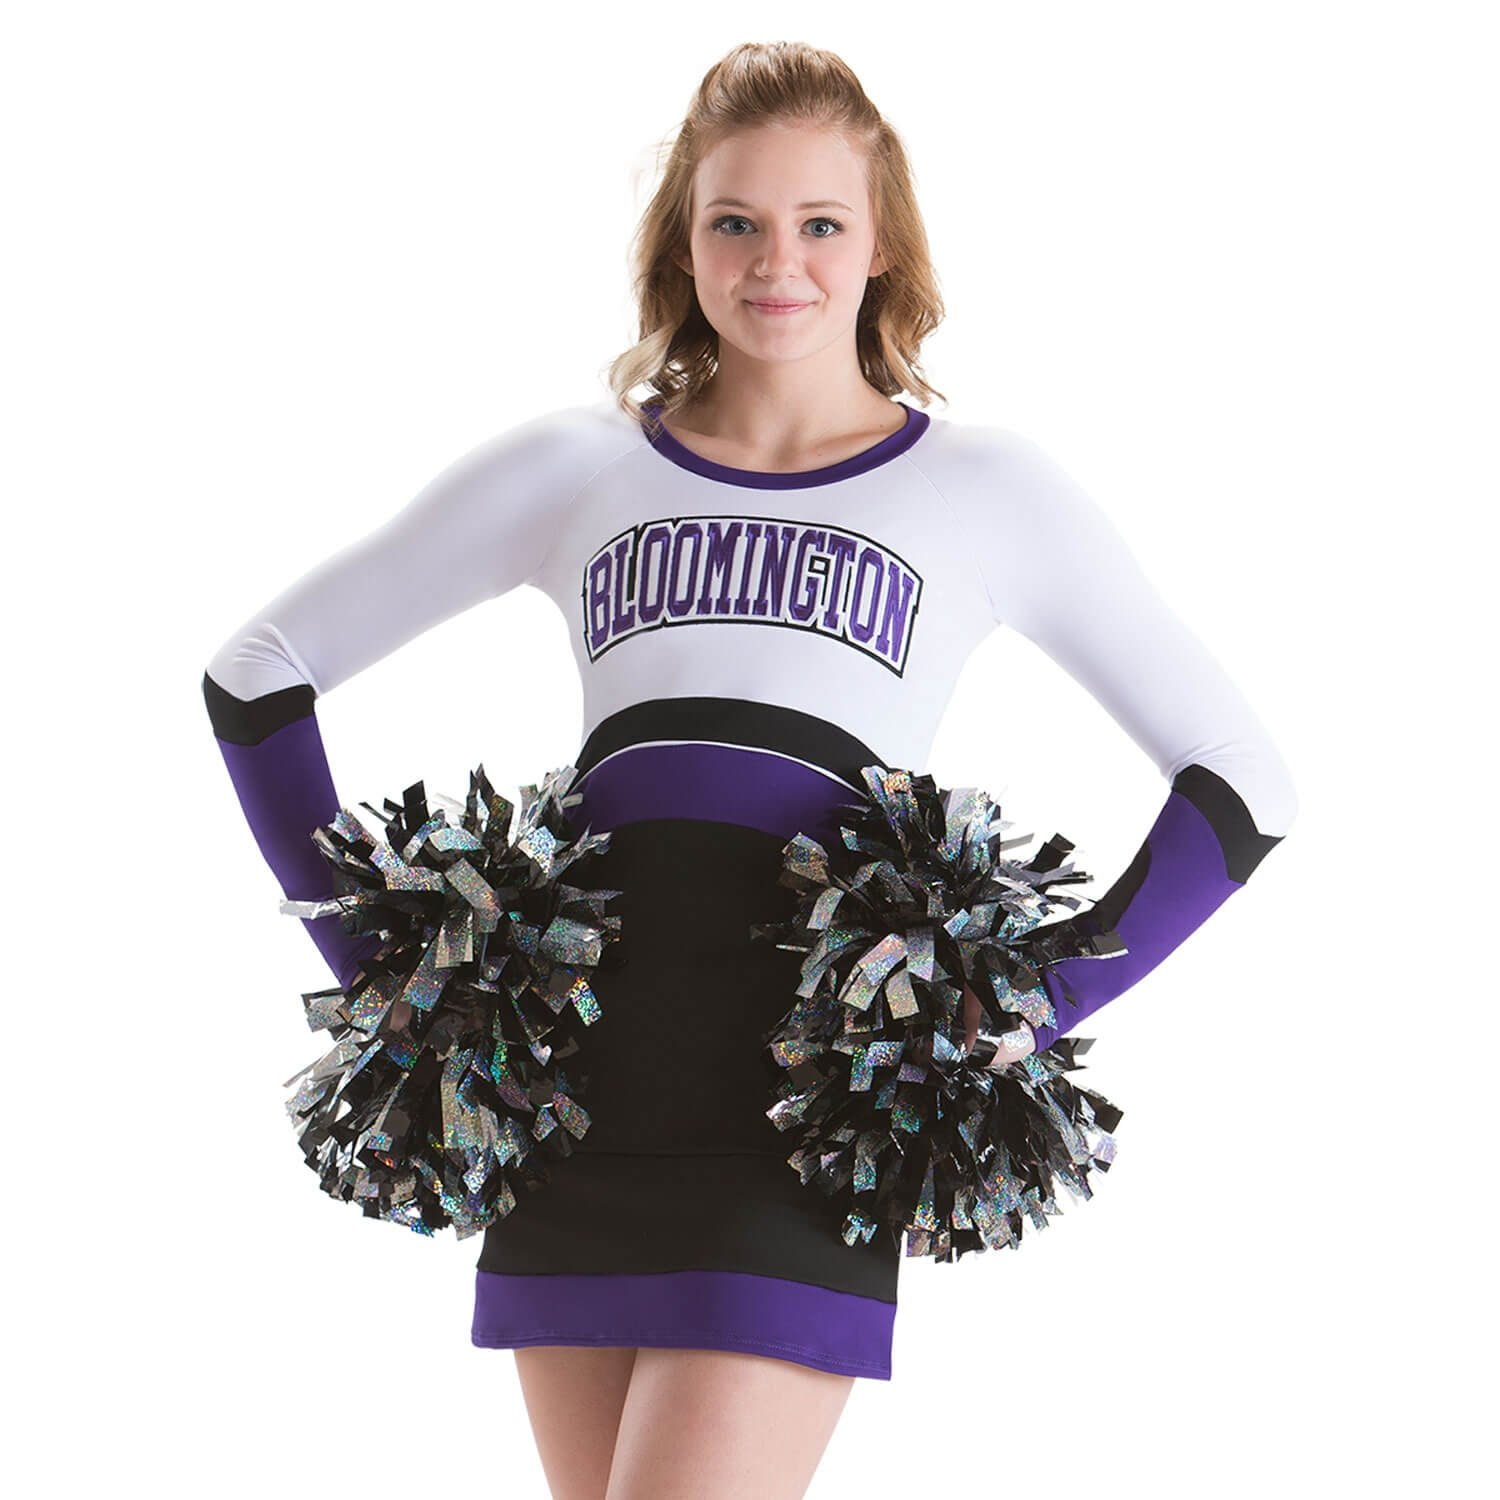 Motionwear Cheerleading Uniforms Long Sleeve Stretch Top